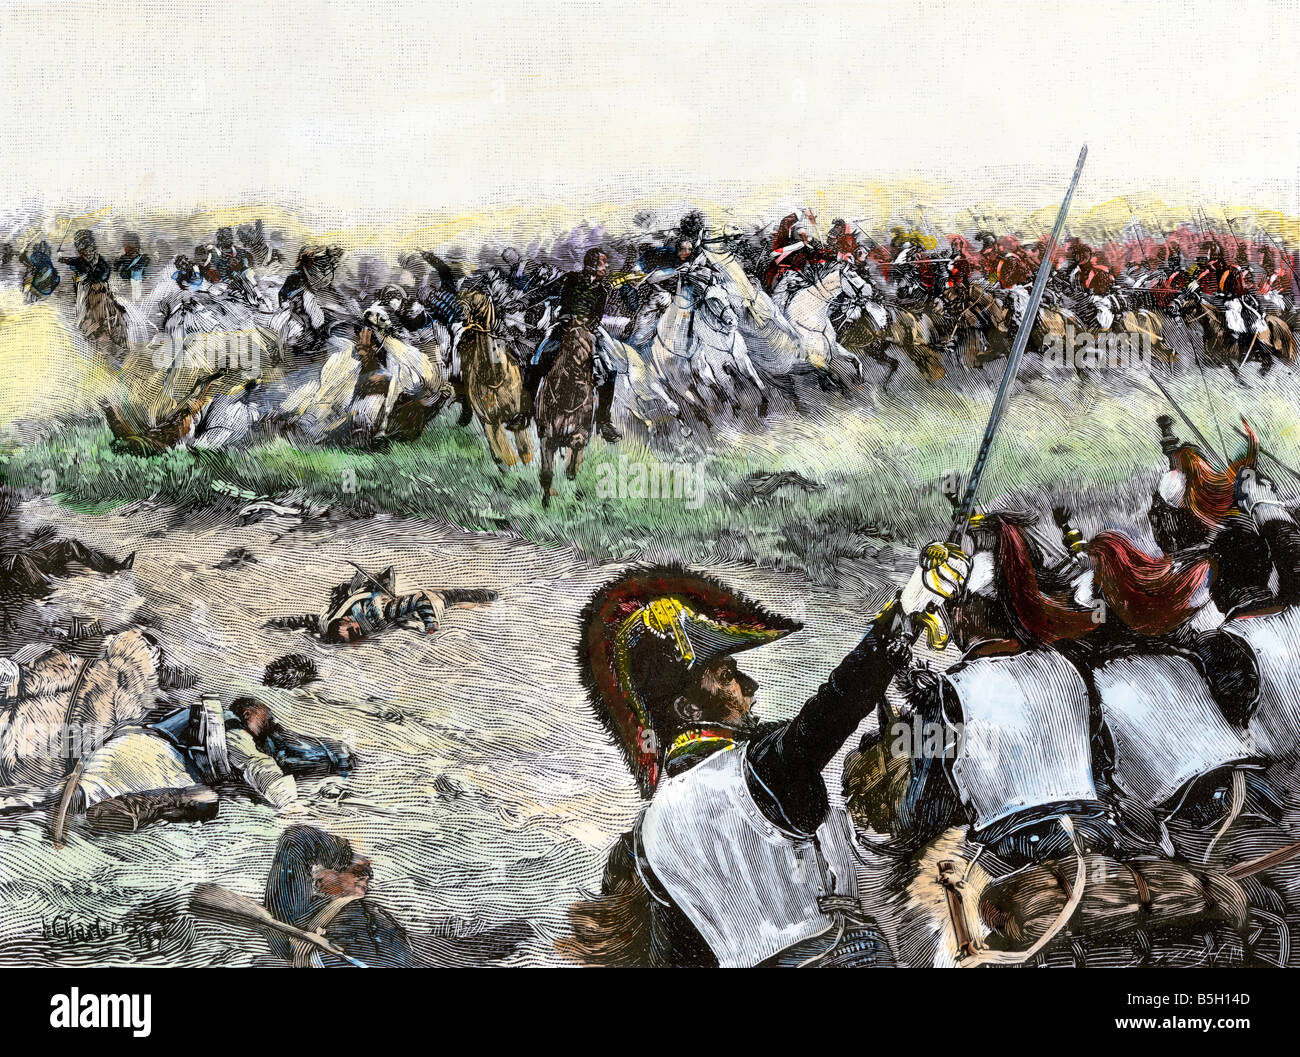 Cavalry charge during Napoleon's final battle at Waterloo 1815. Hand-colored halftone of an illustration Stock Photo